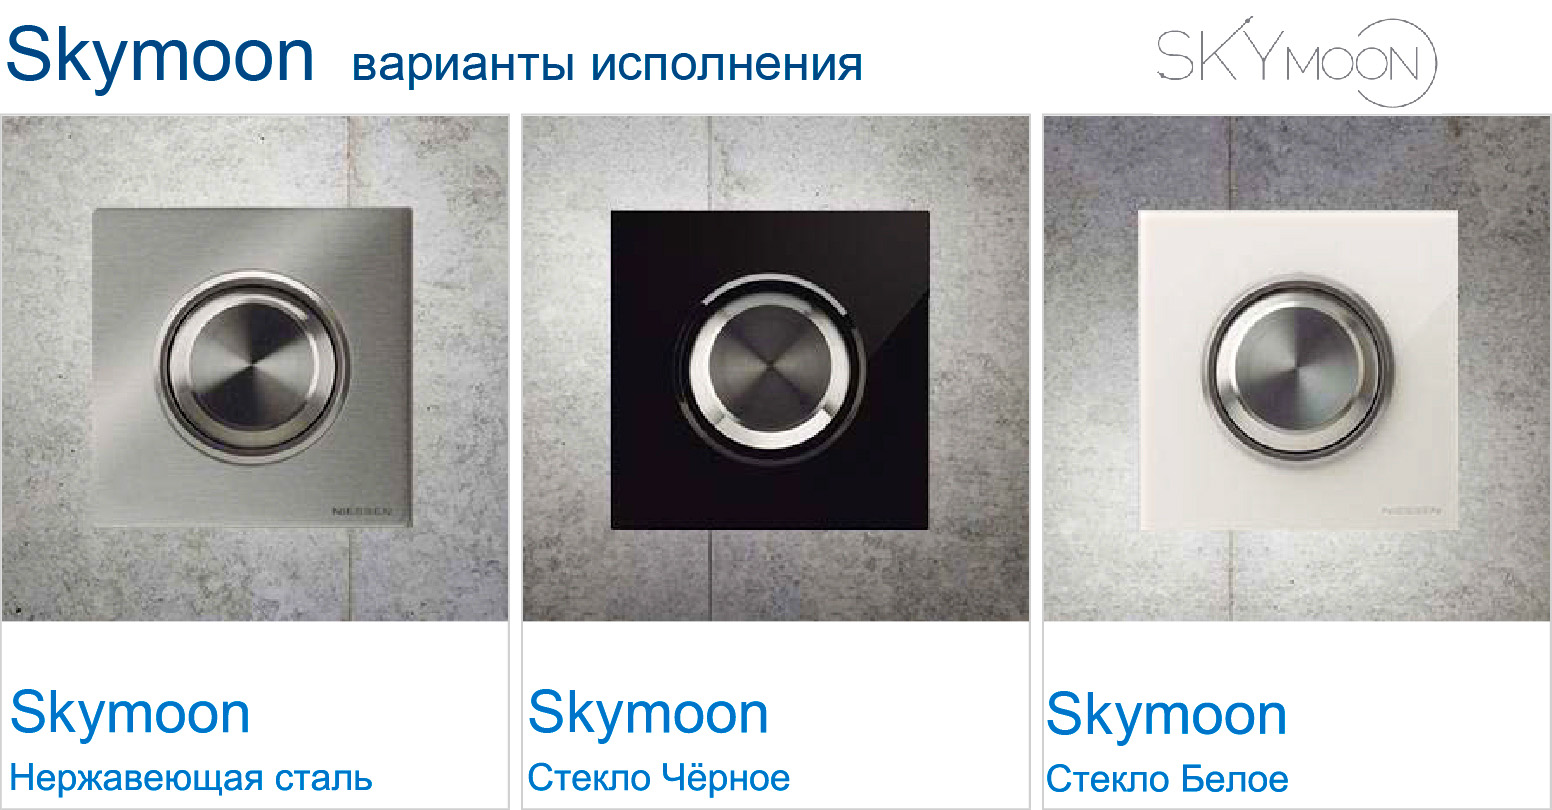 SKYmoon